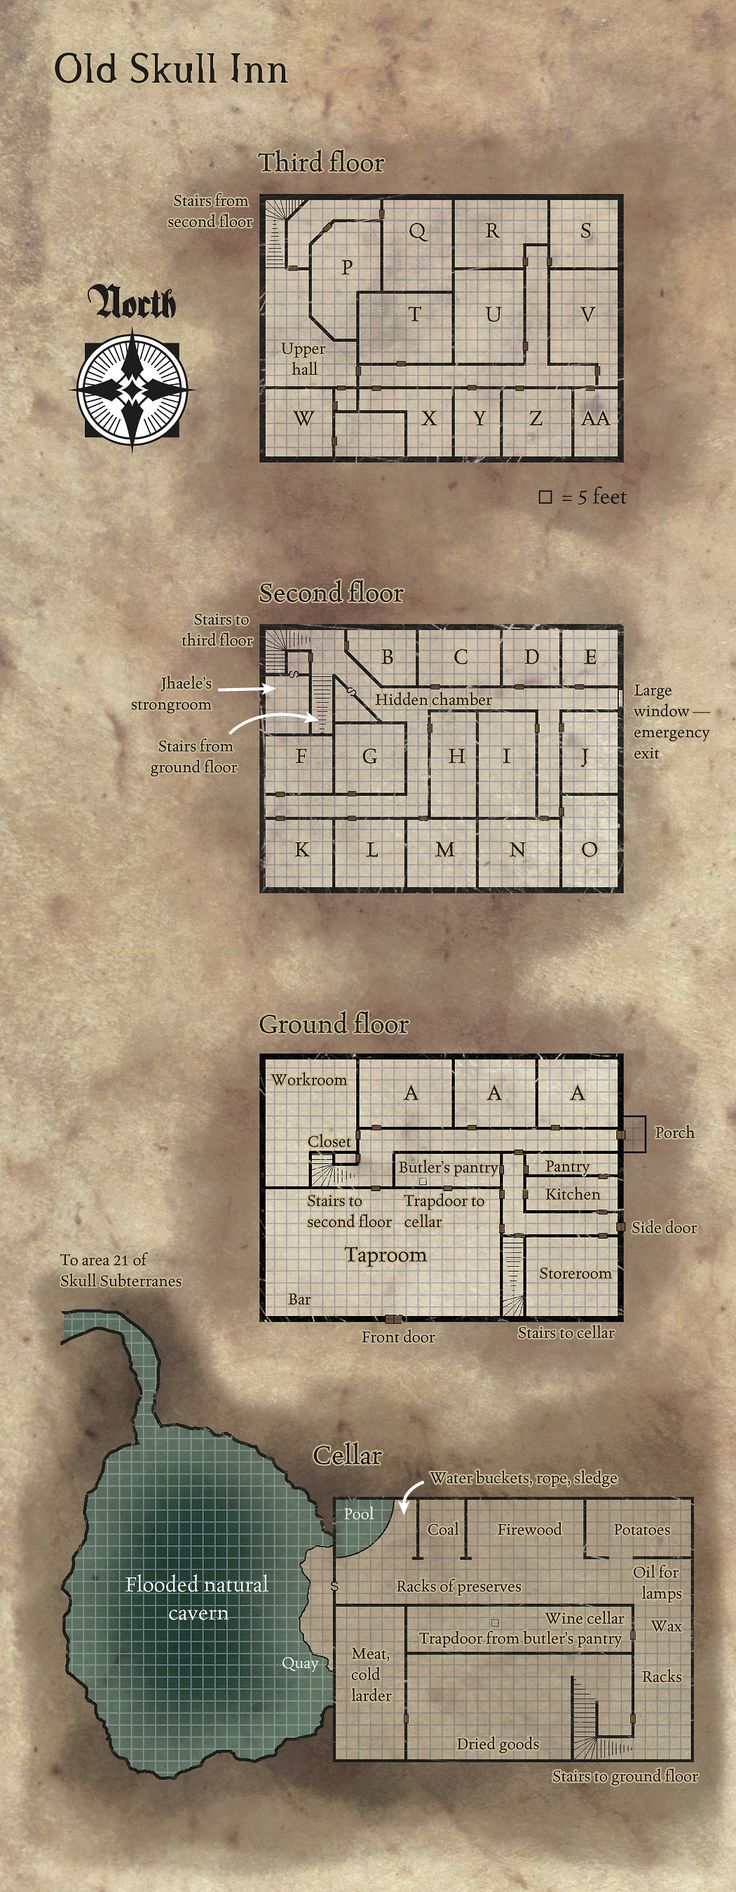 Floorplan of an inn